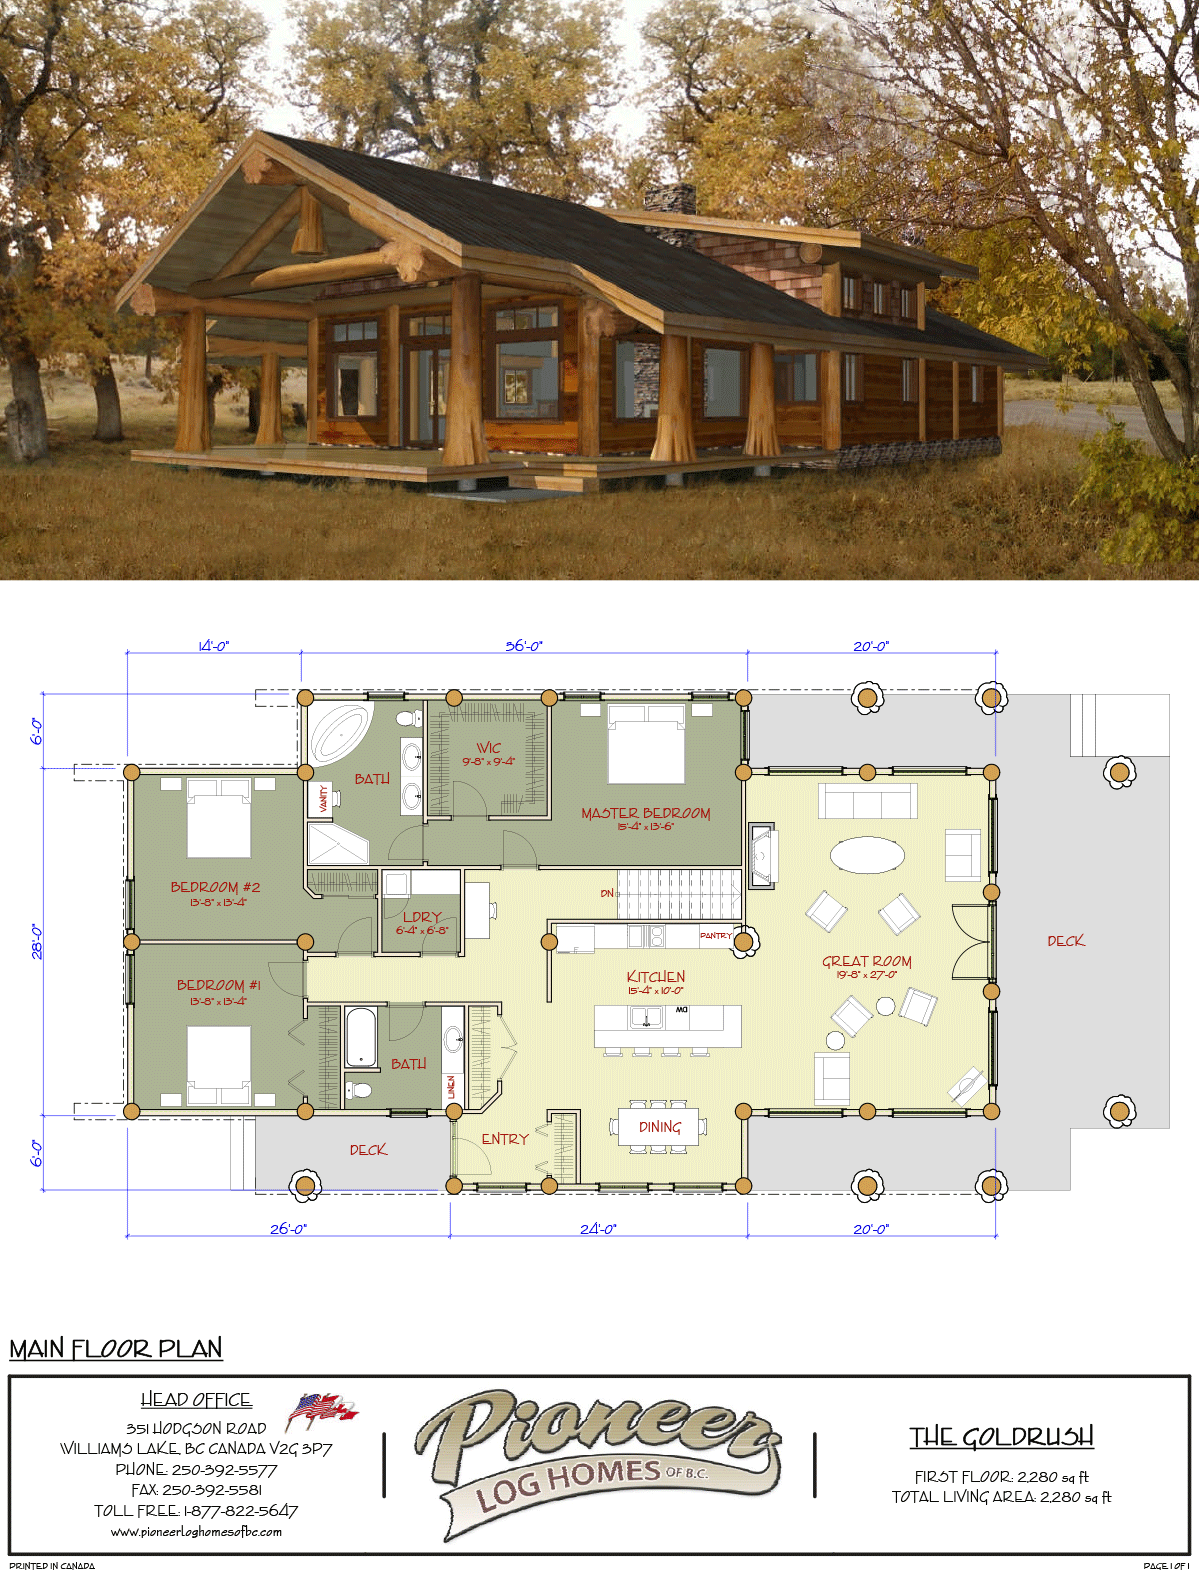 PioneerMidwest-Goldrush | Dream house plans, Ranch house ...